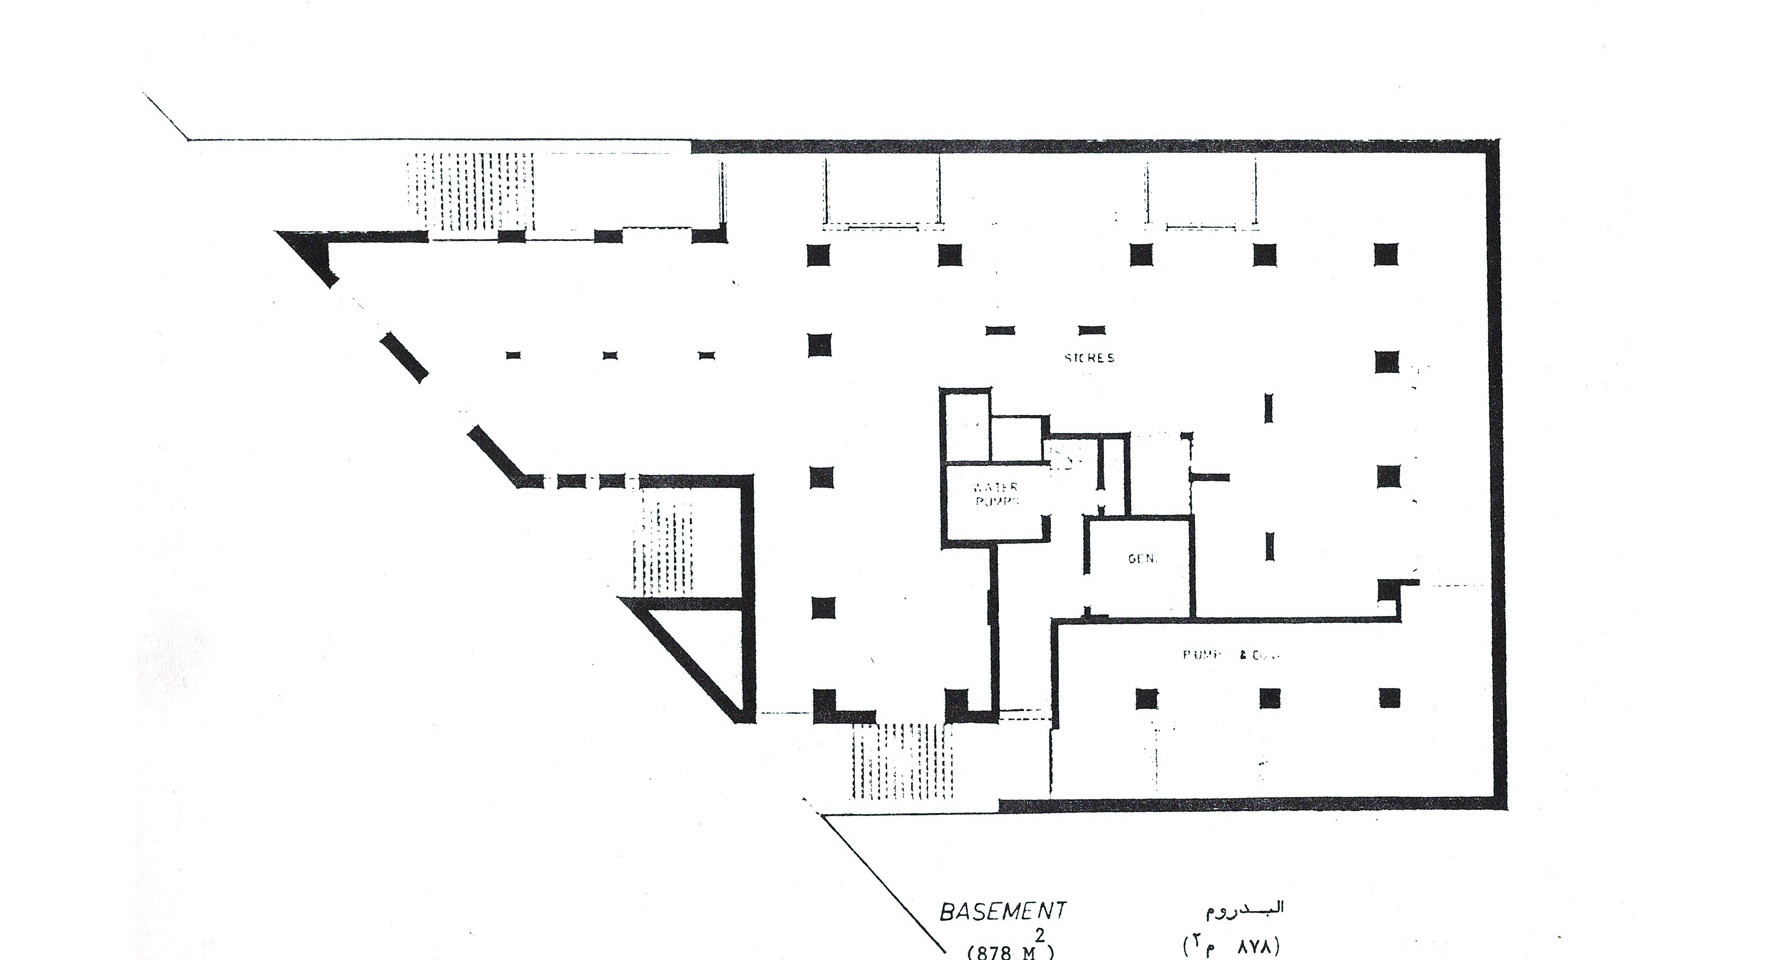 Hedico Main Office Building Basement Plan